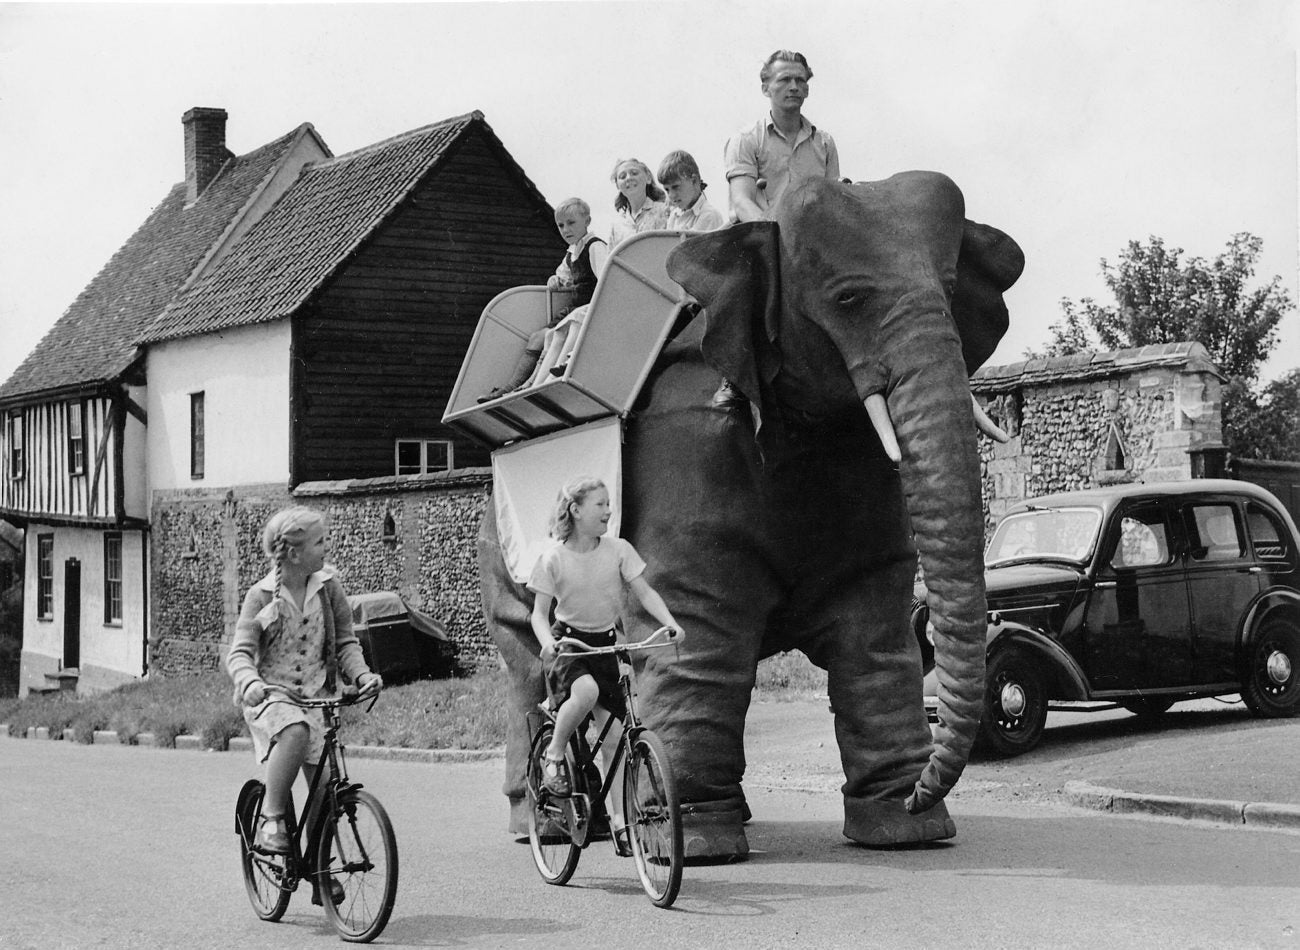 Everyone Should Get to Travel in a Giant Mechanical Elephant Like This